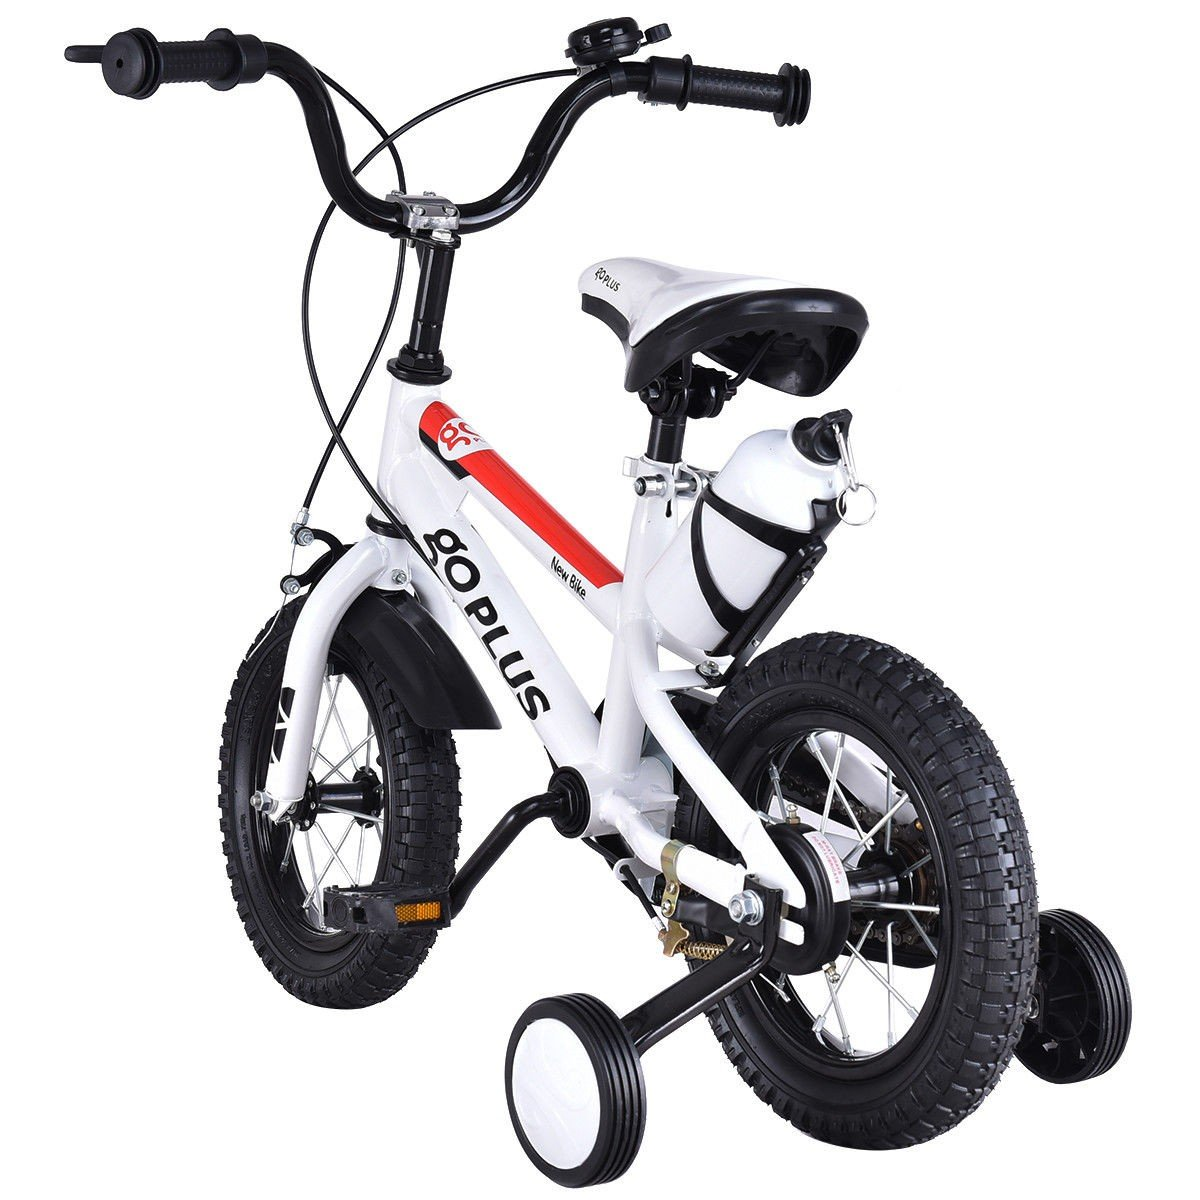 MD Group Kids Bicycle 12'' Freestyle White Metal Frame Adjustable with Training Wheels by MD Group (Image #3)